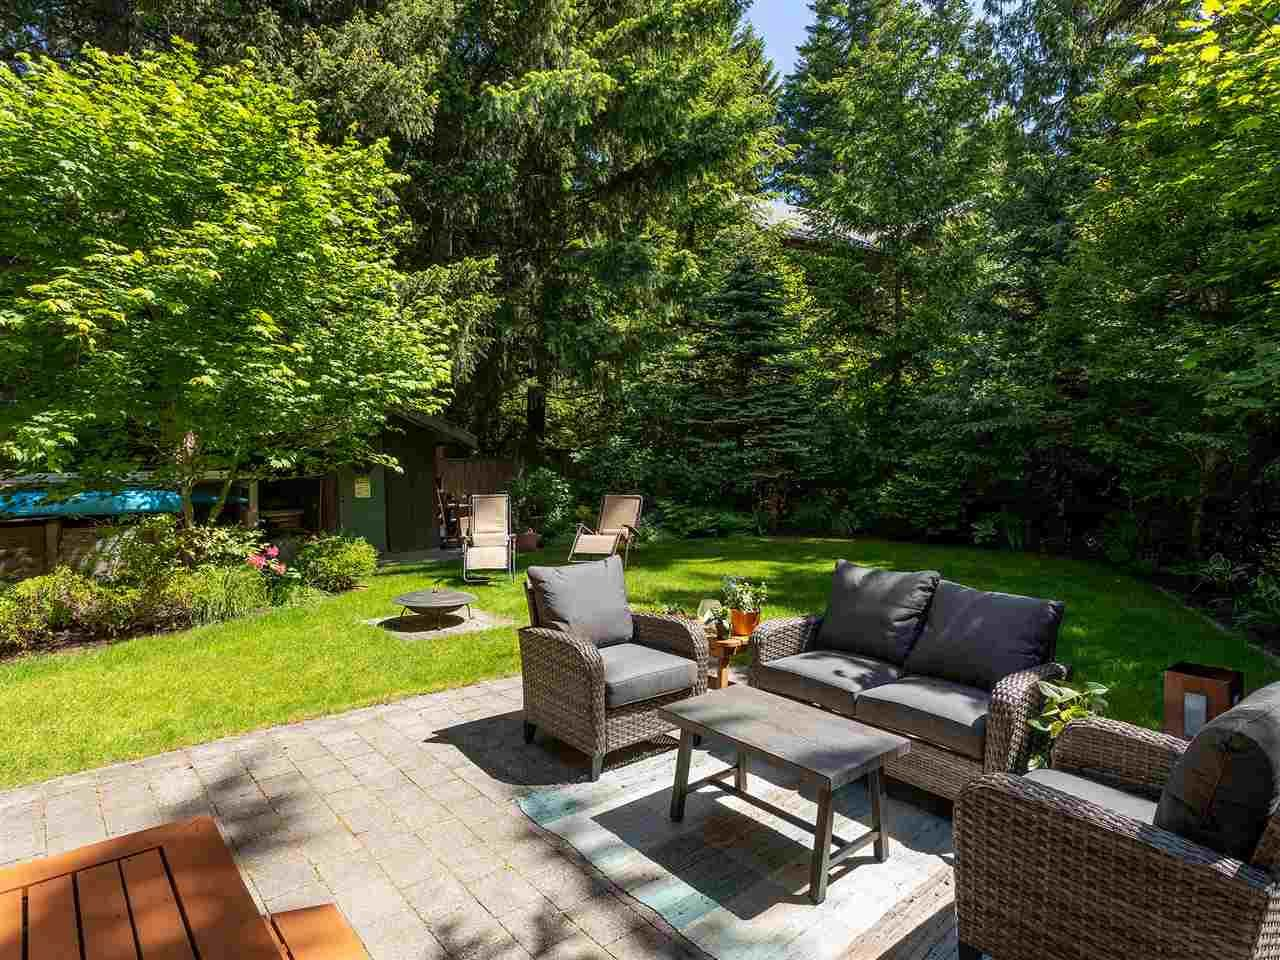 Photo 33: Photos: 3217 ARCHIBALD WAY in Whistler: Alta Vista House for sale : MLS®# R2468991